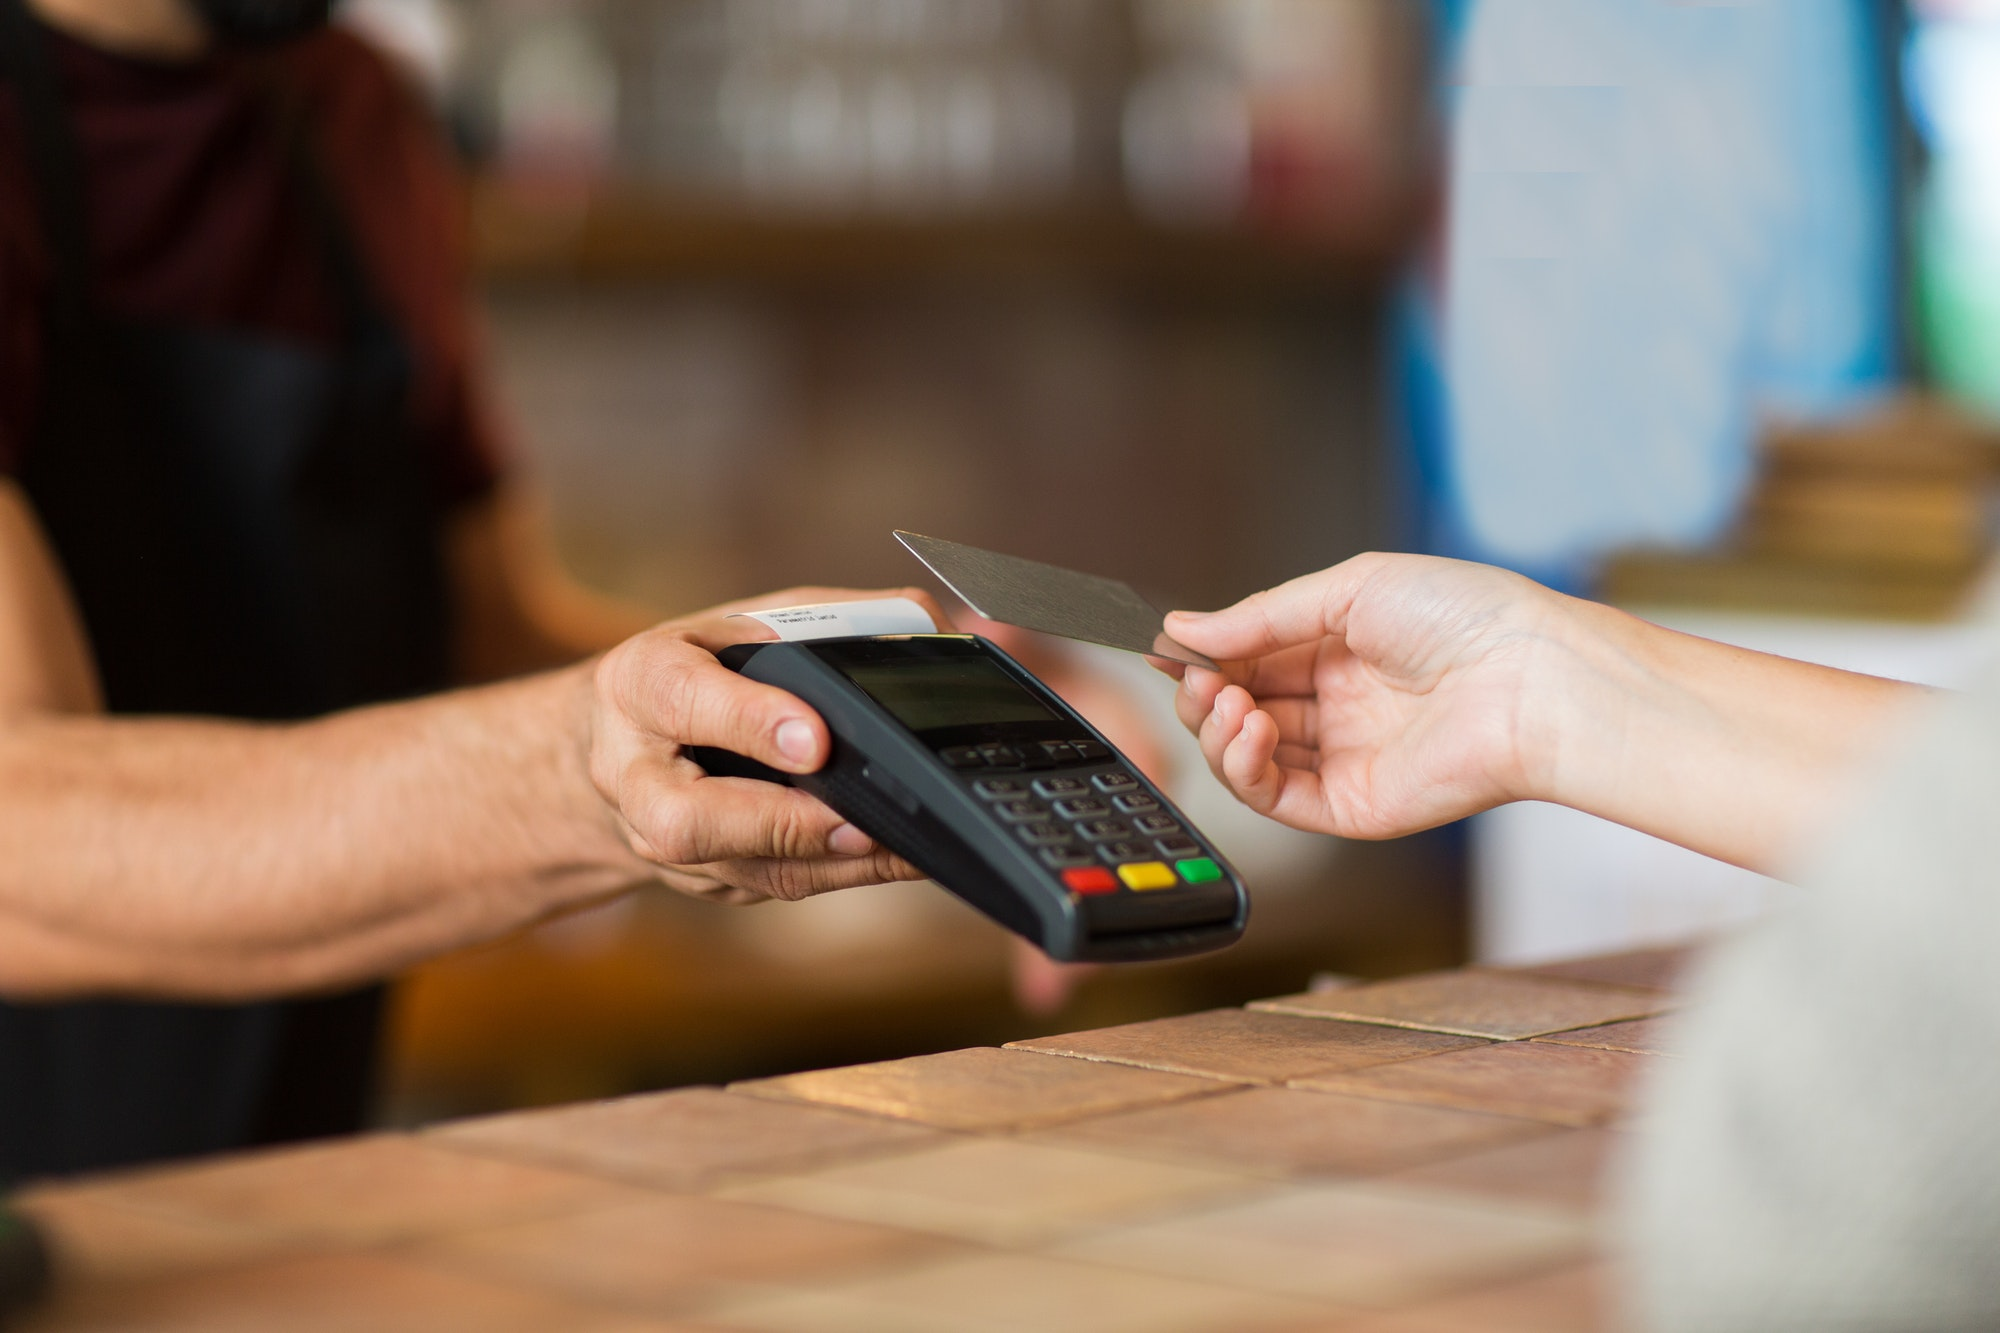 Girocard acceptance for foreign payment service providers – is it really necessary?